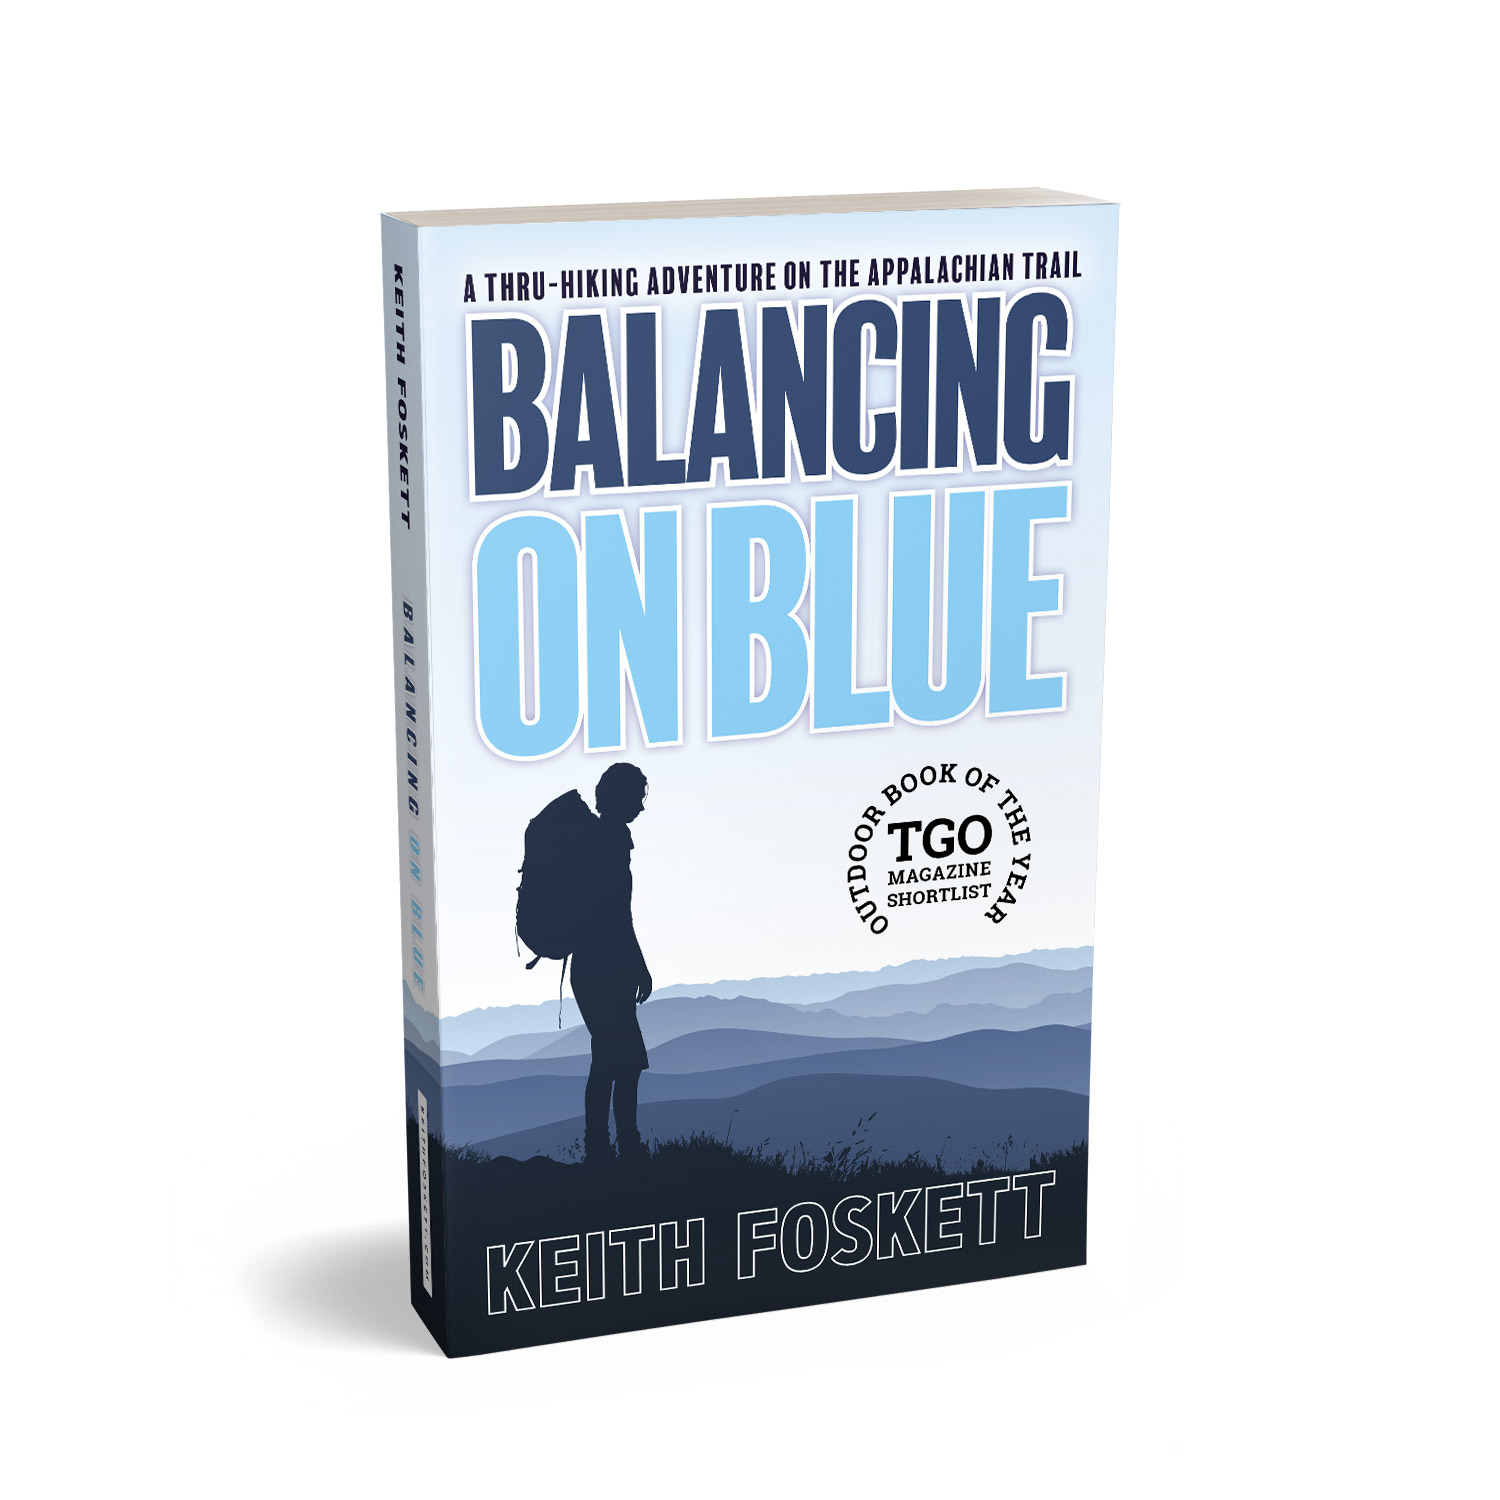 'Balancing On Blue' is an excellent hiking memoir, about one man's thru-hiking adventures in the Appalachians. The author is Keith Foskett. The book cover was designed by Mark Thomas, of coverness.com. To find out more about my book design services, please visit www.coverness.com.